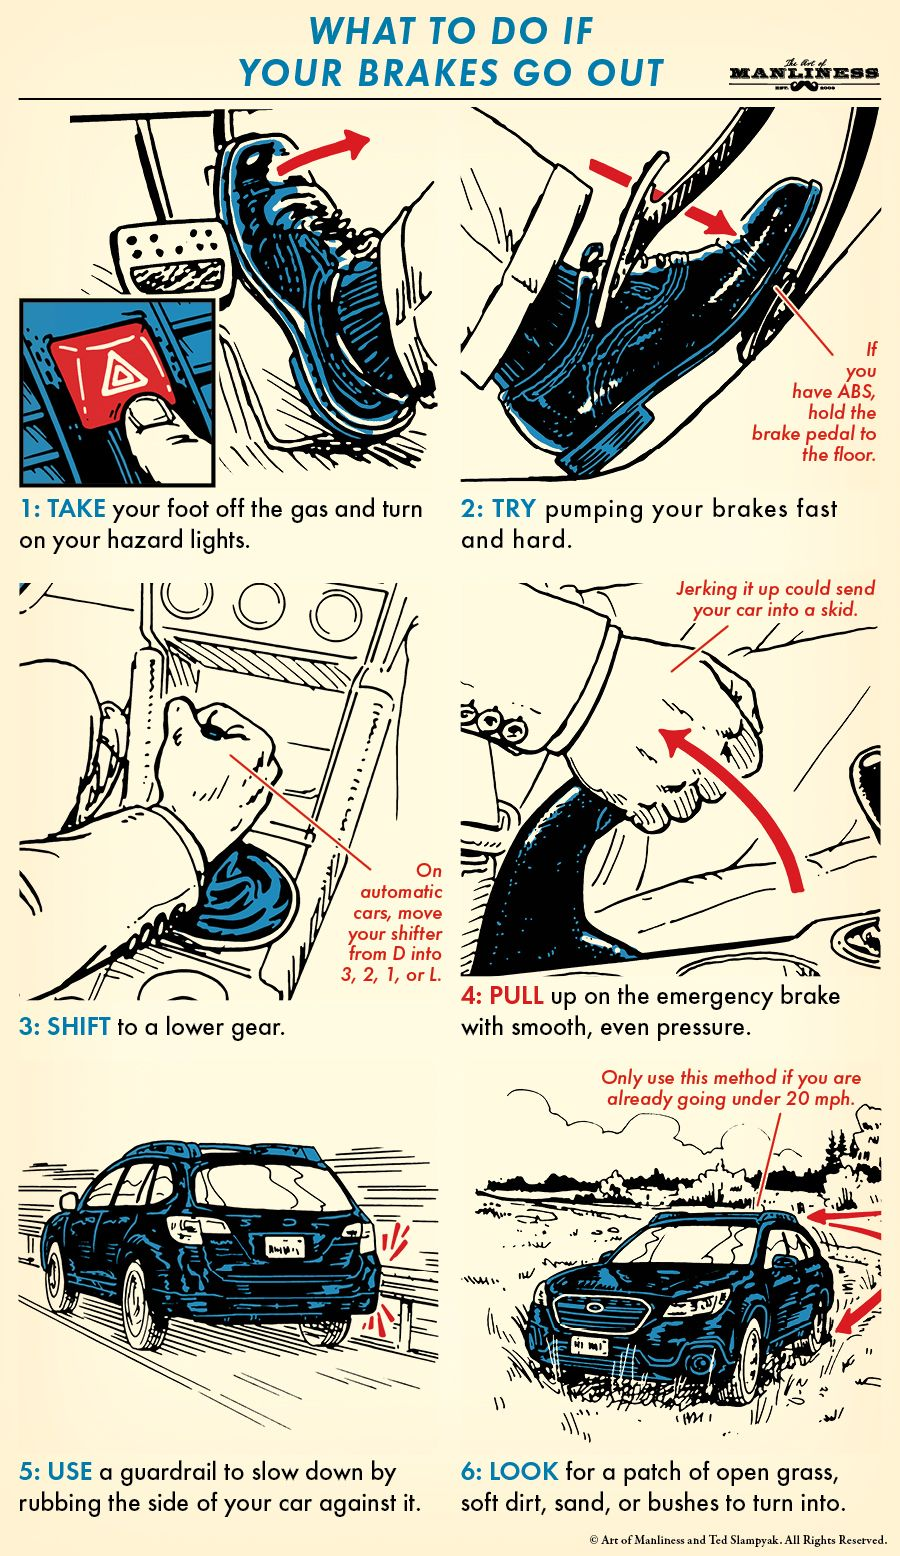 What To Do If Your Brakes Fail Survival life hacks